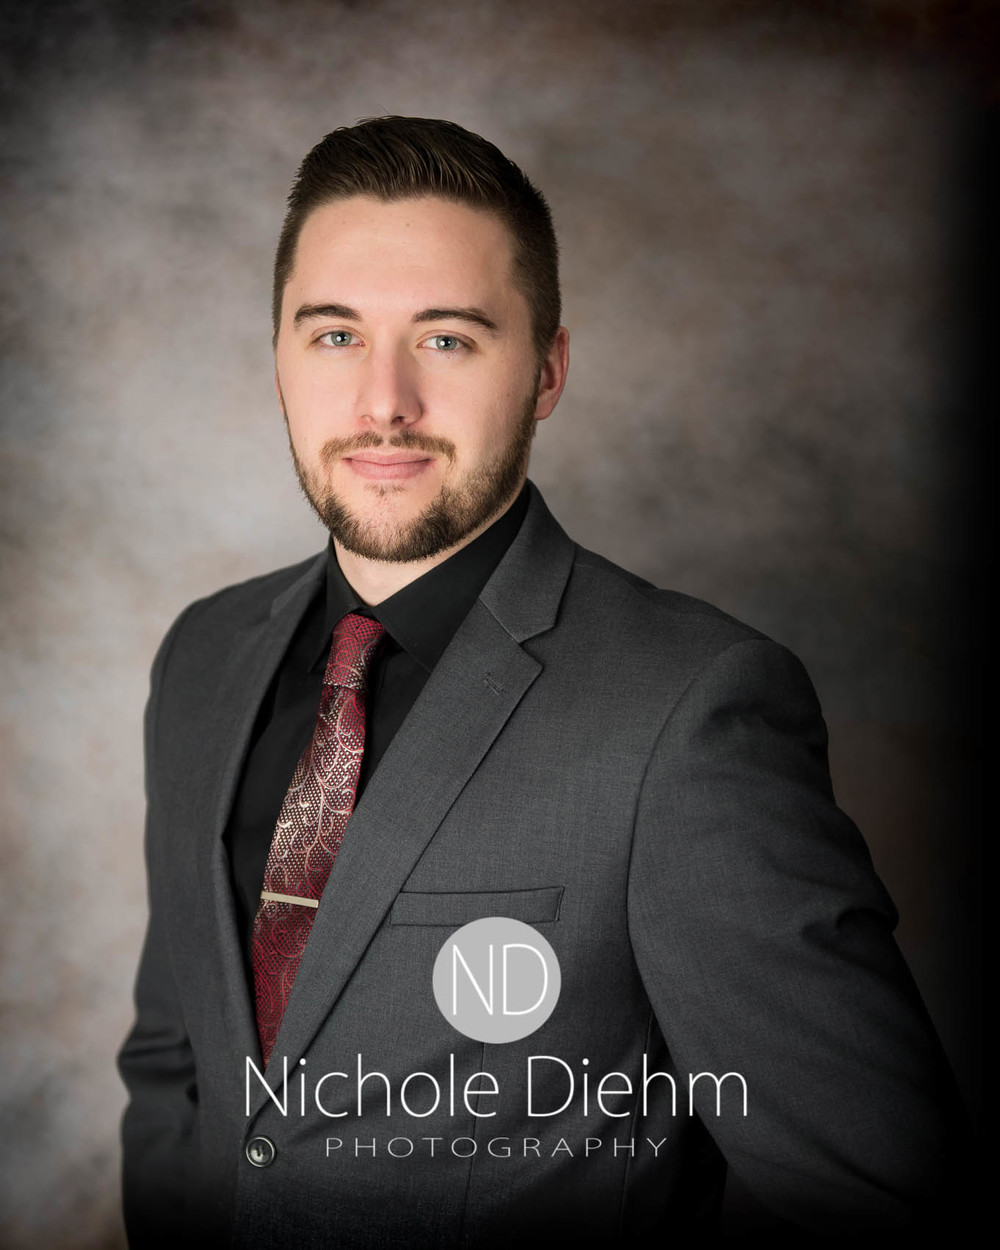 Nichole Diehm Photography Headshots Zach Kowalik New York Life Agent.jpg